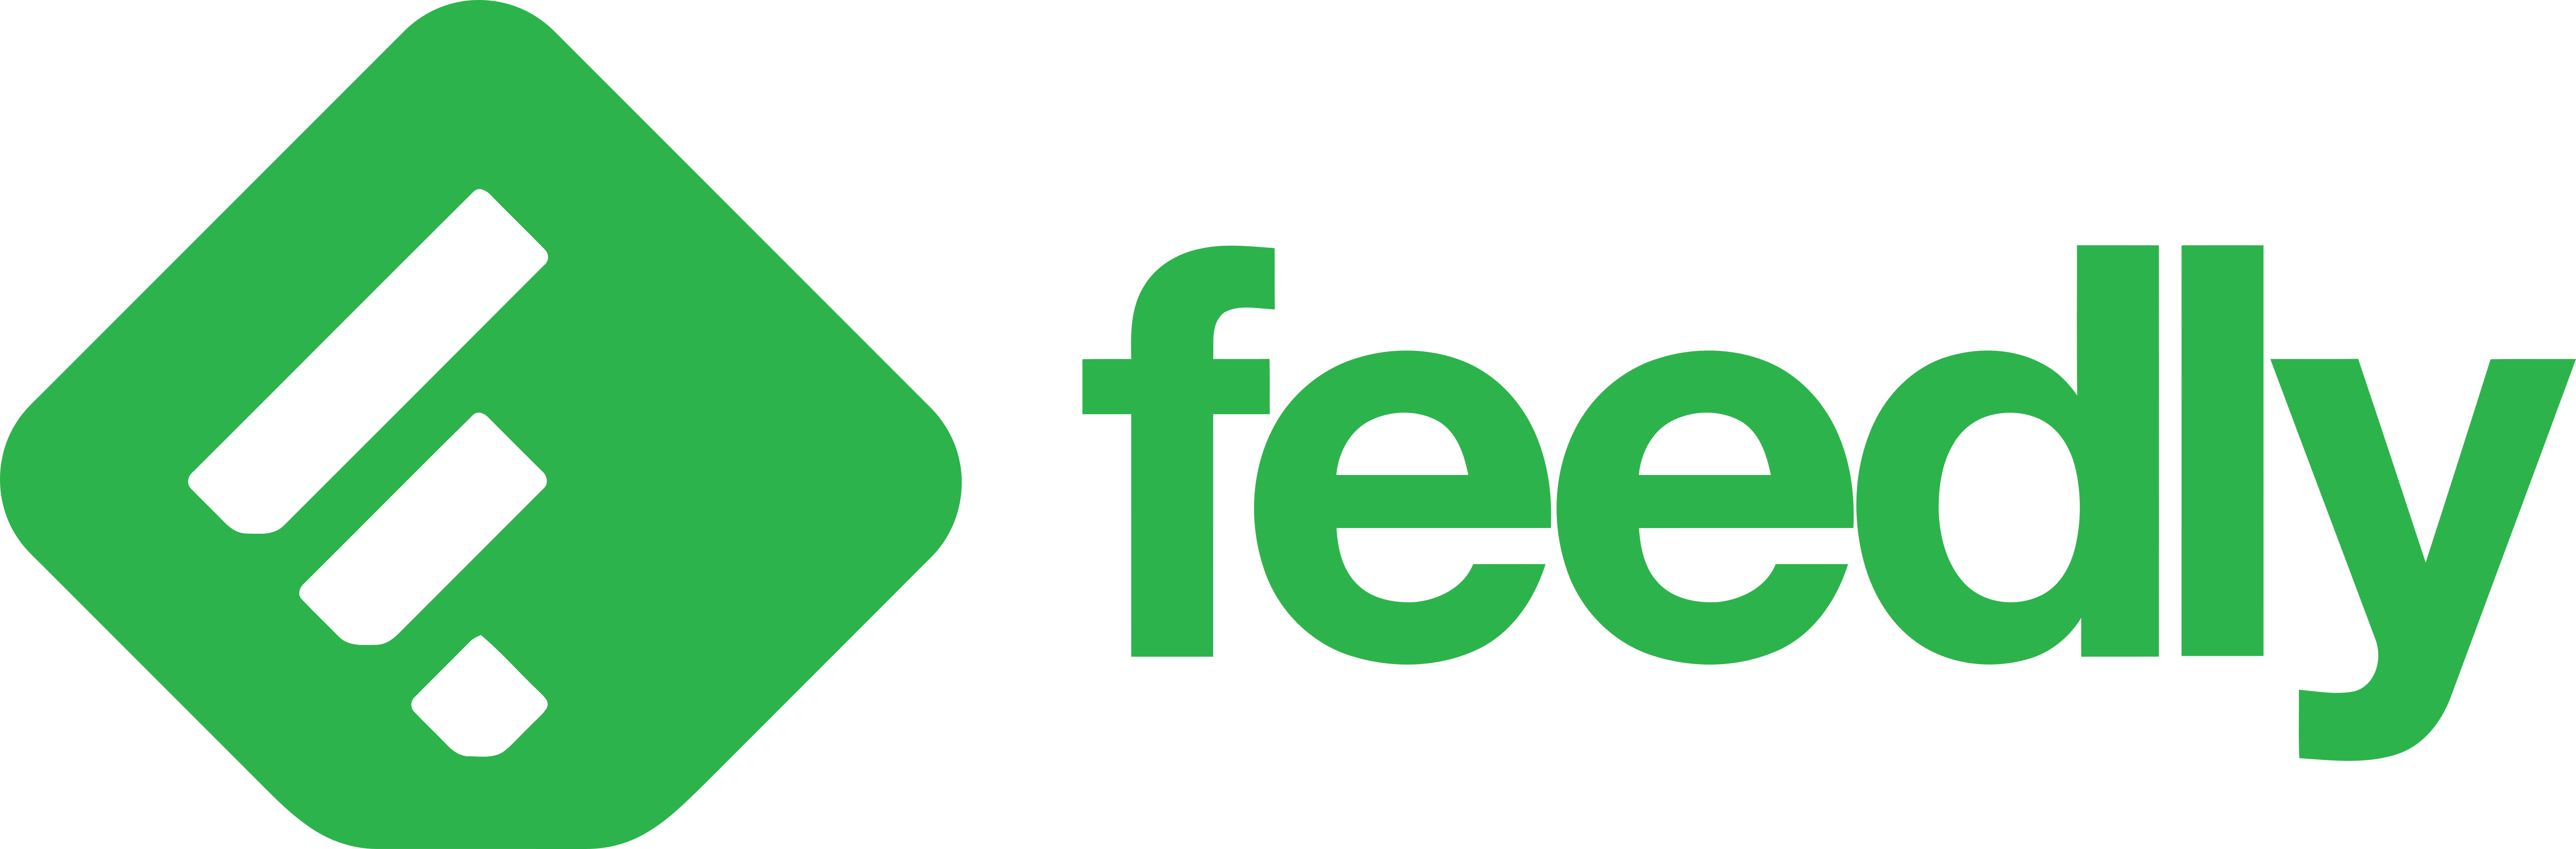 Feedly Png - Feedly – Logos Download